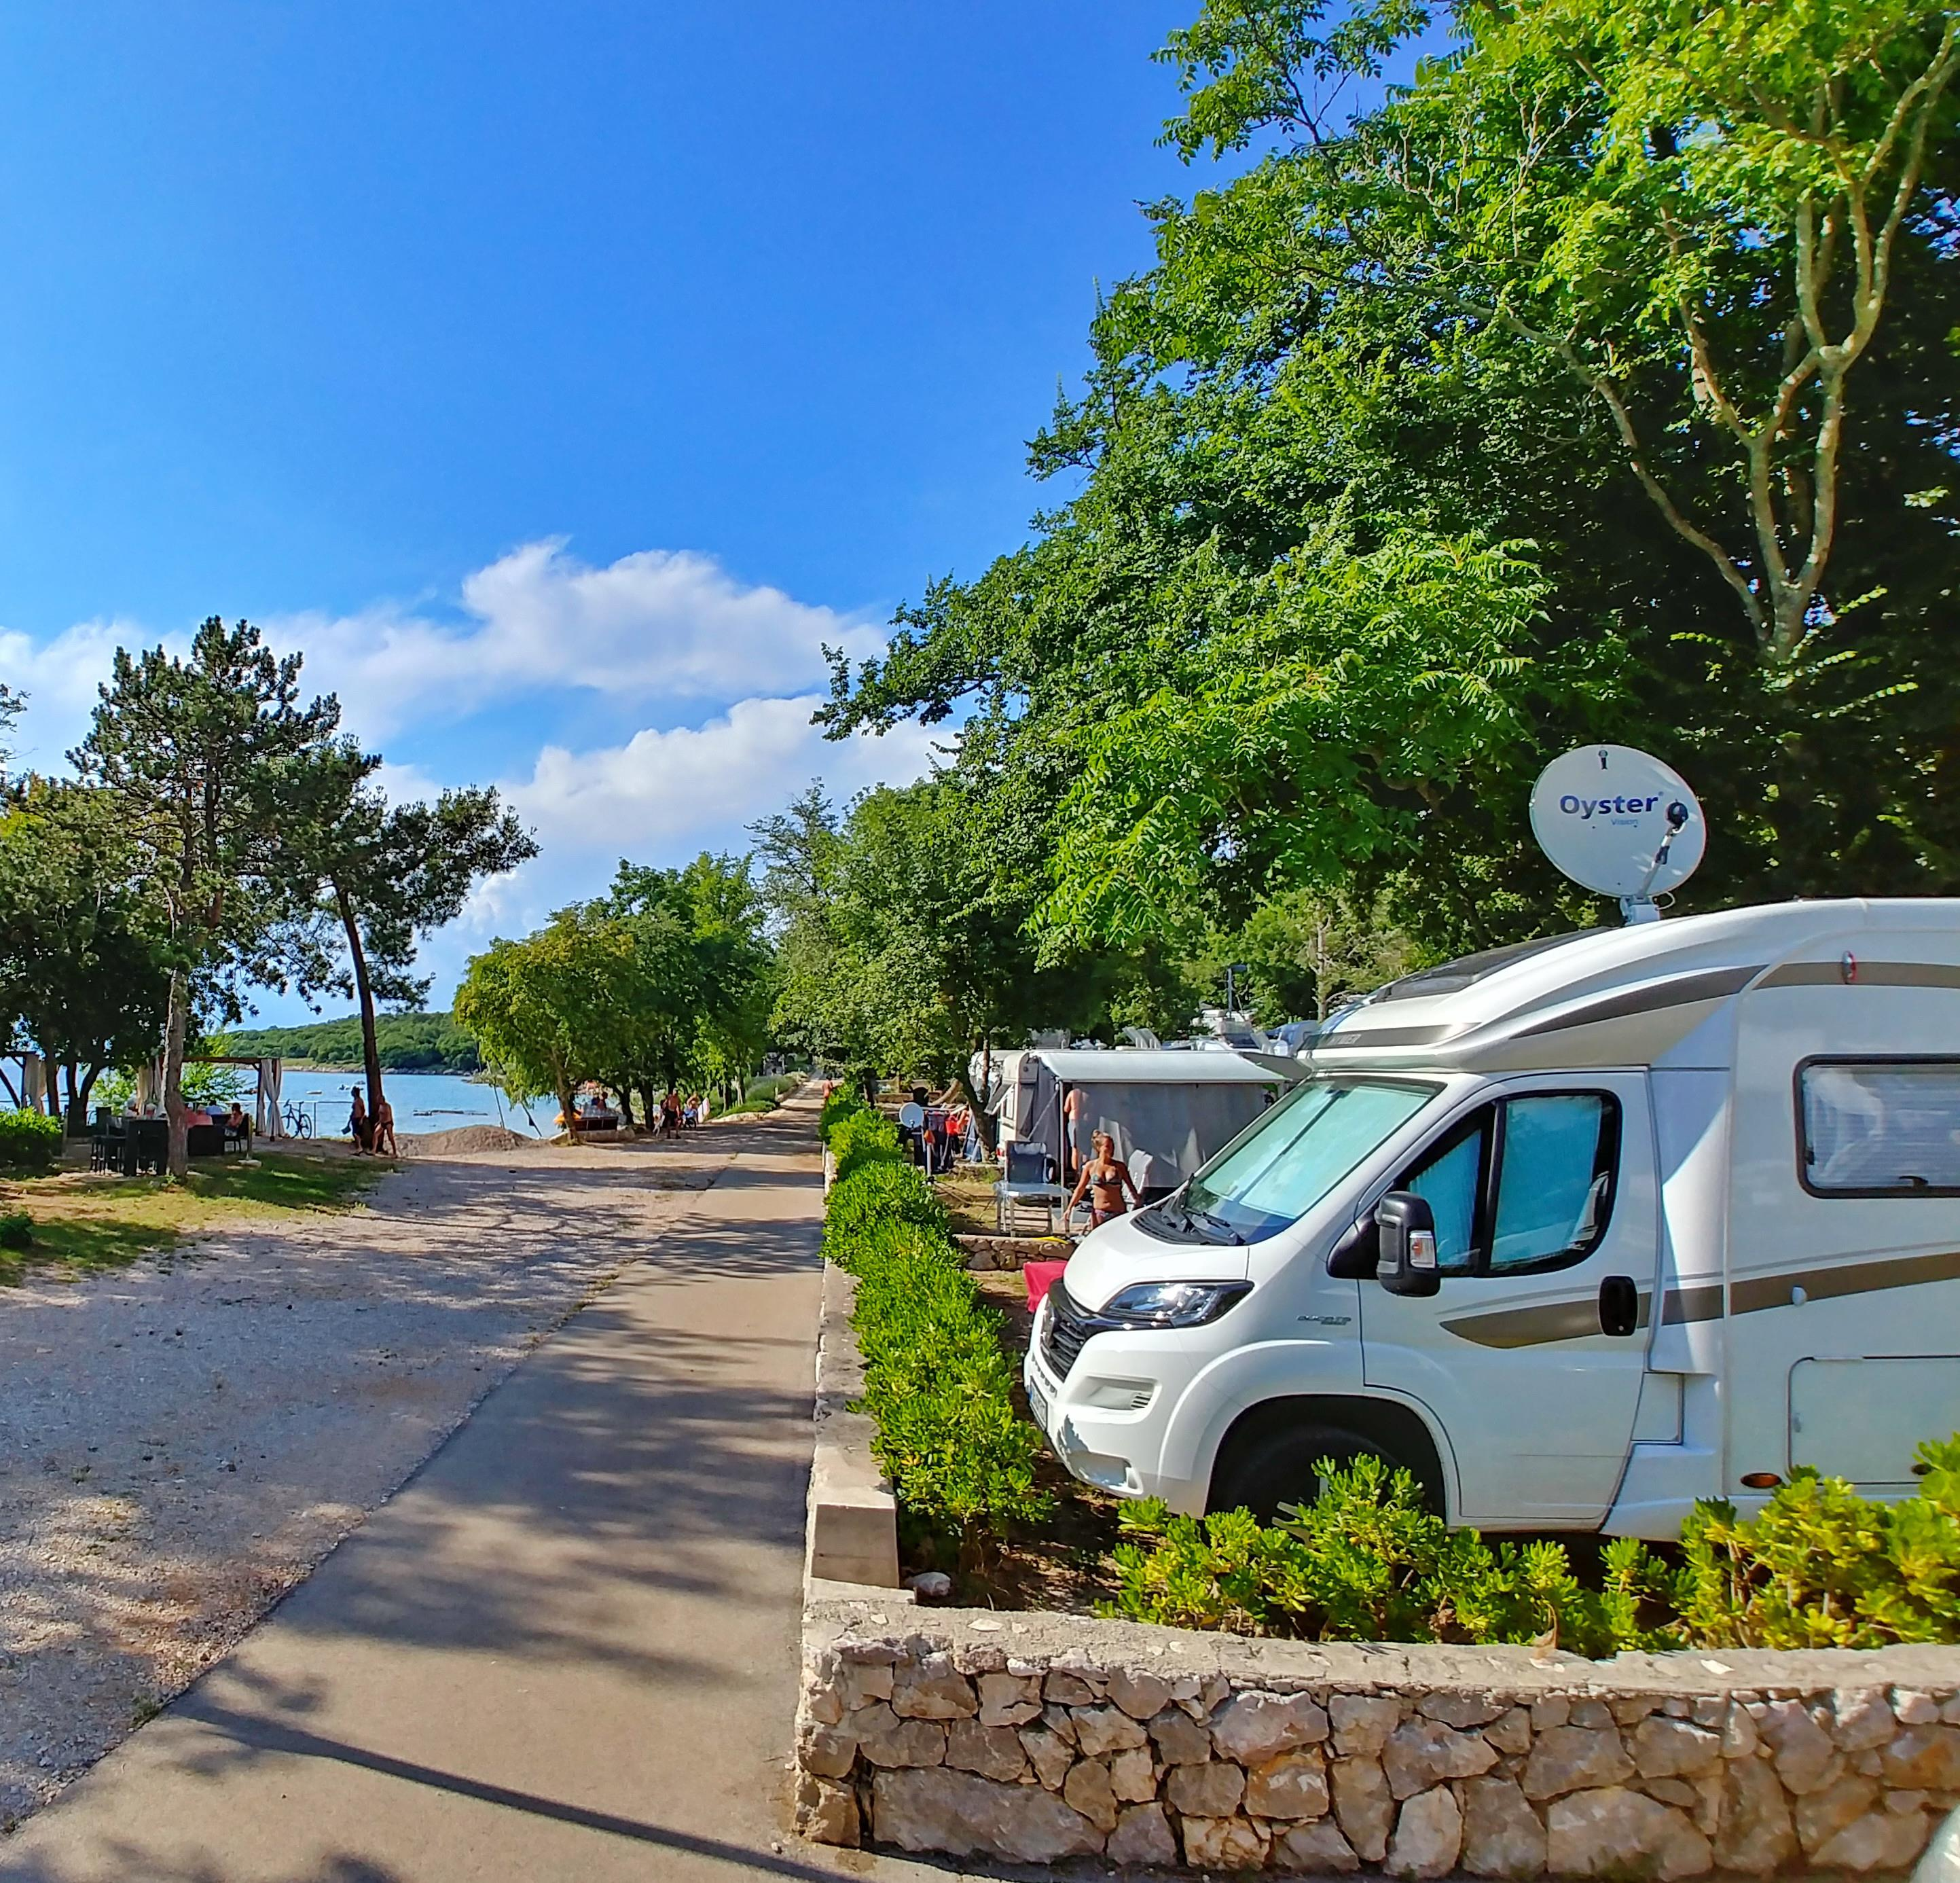 Emplacement - Emplacement Camping-Car - Aminess Atea Camping Resort